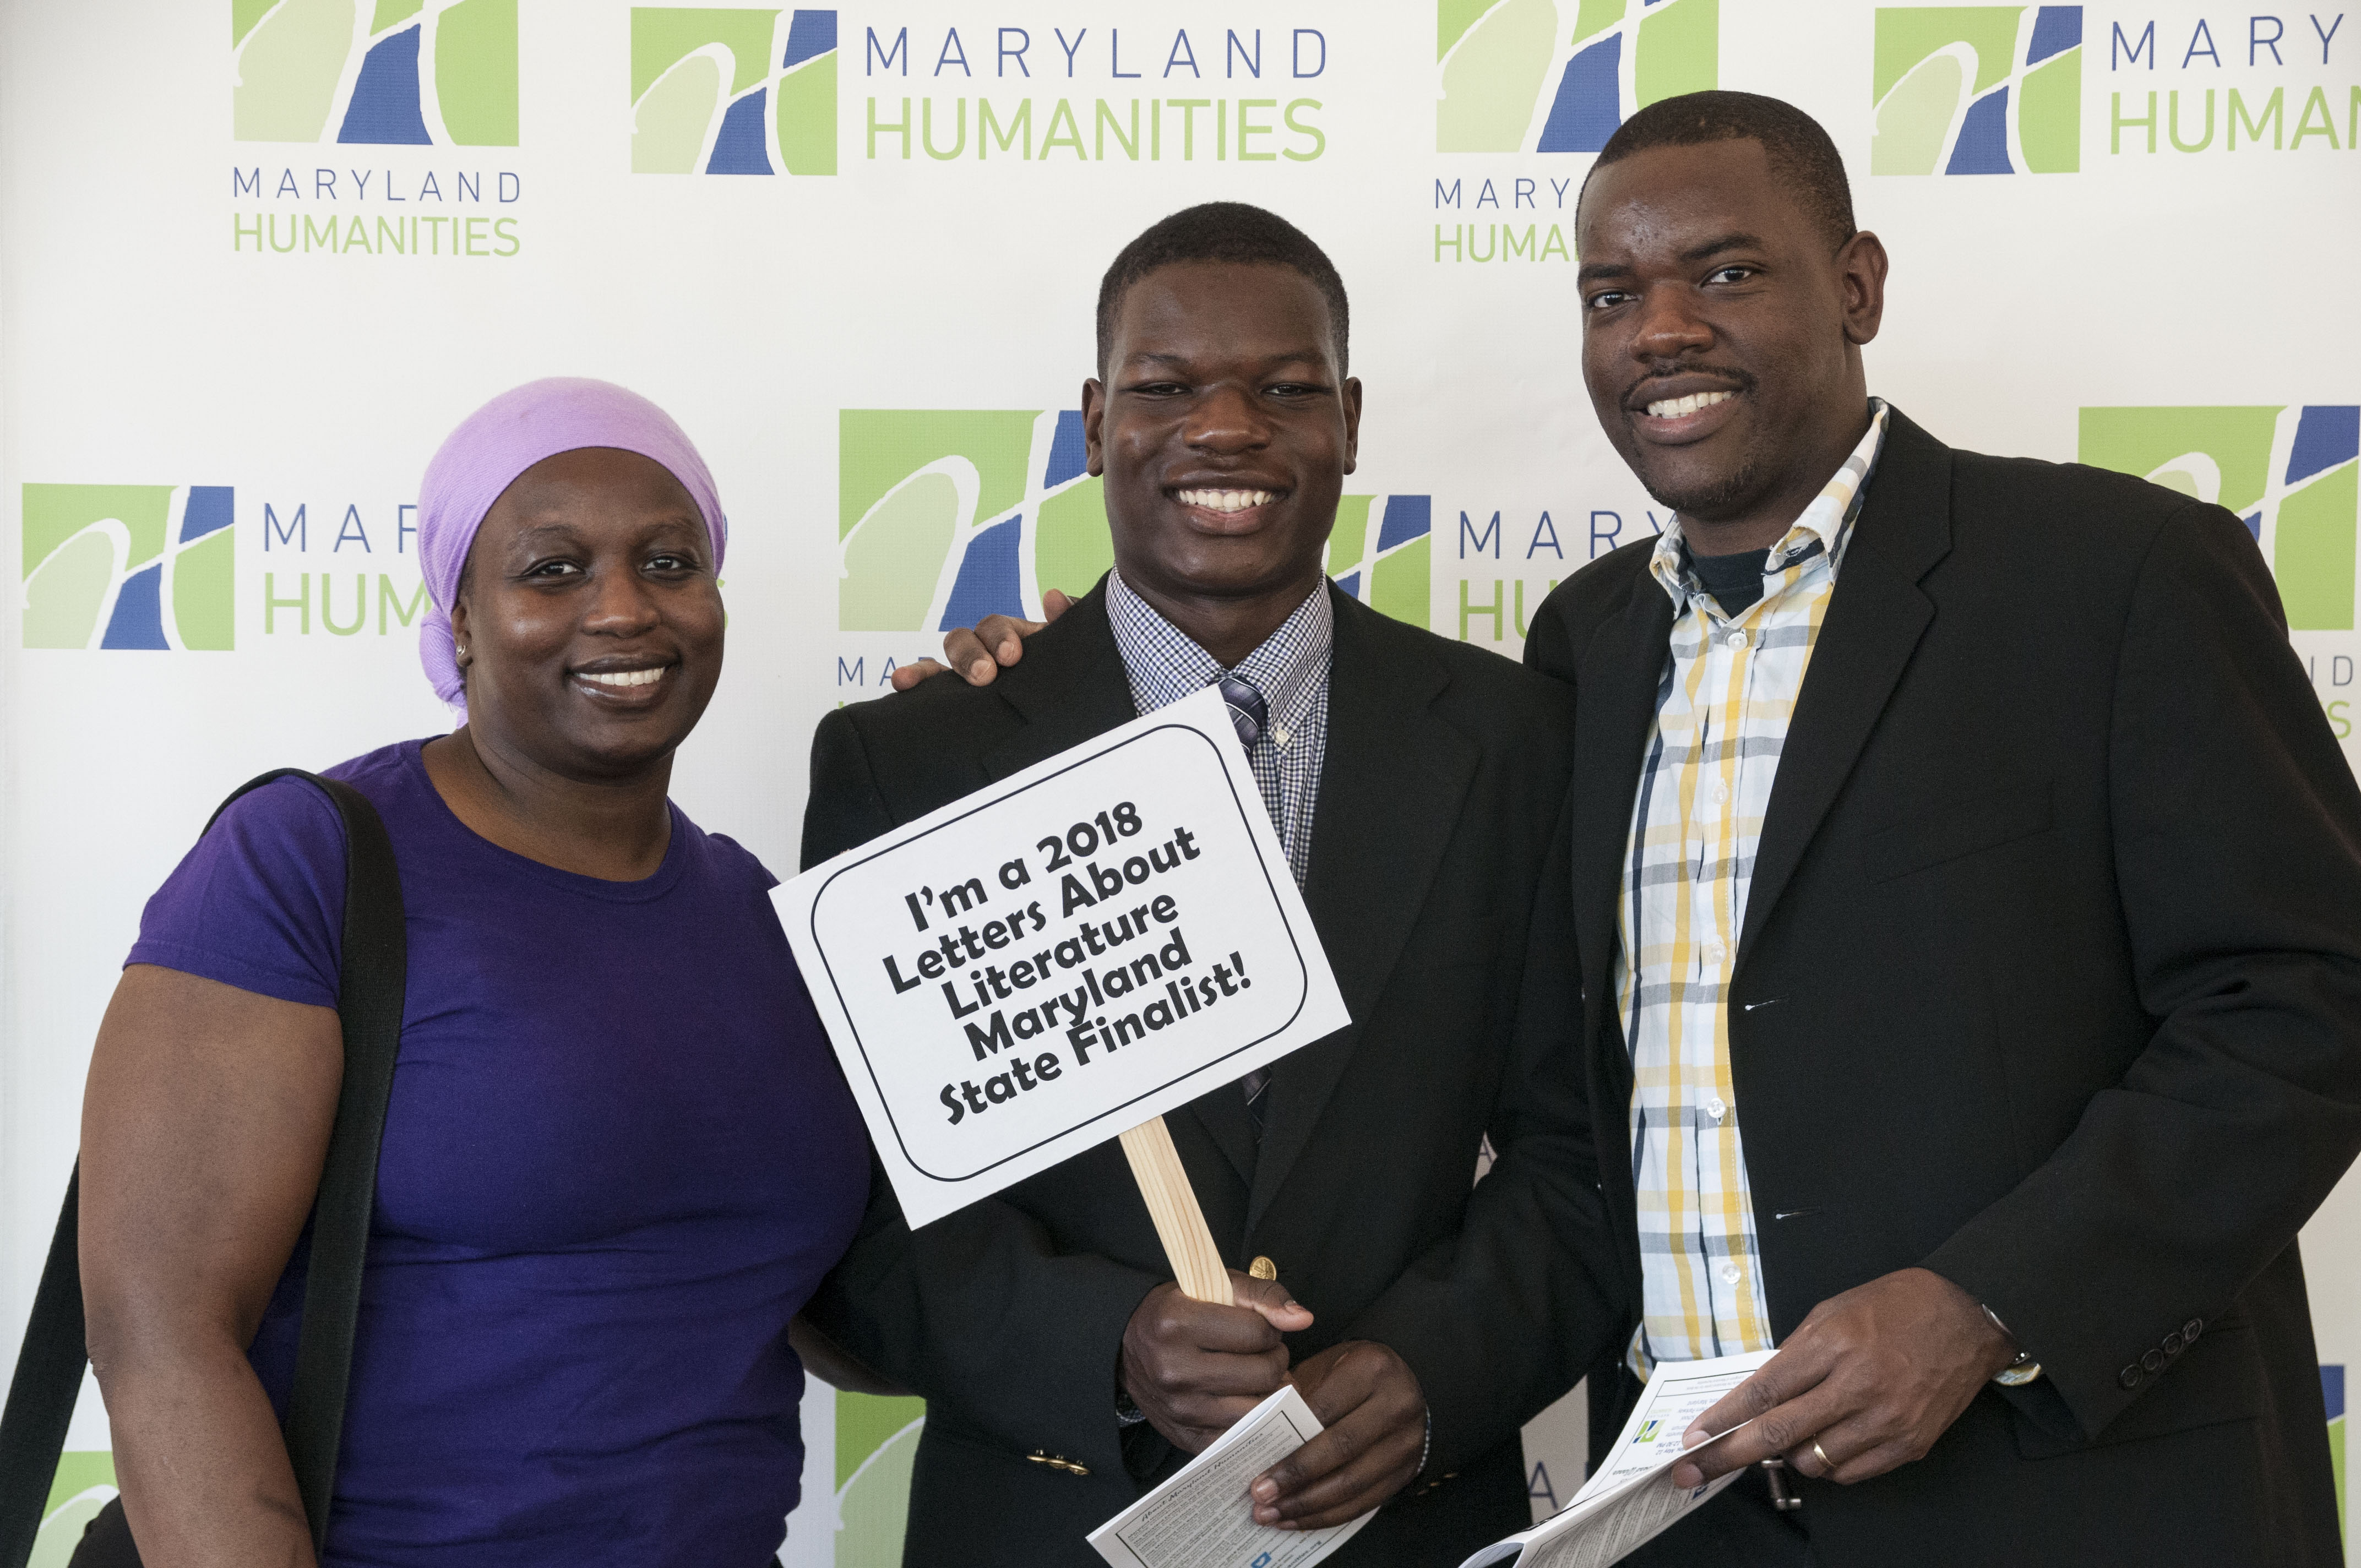 2018 LAL finalist posing with family with congratulatory sign